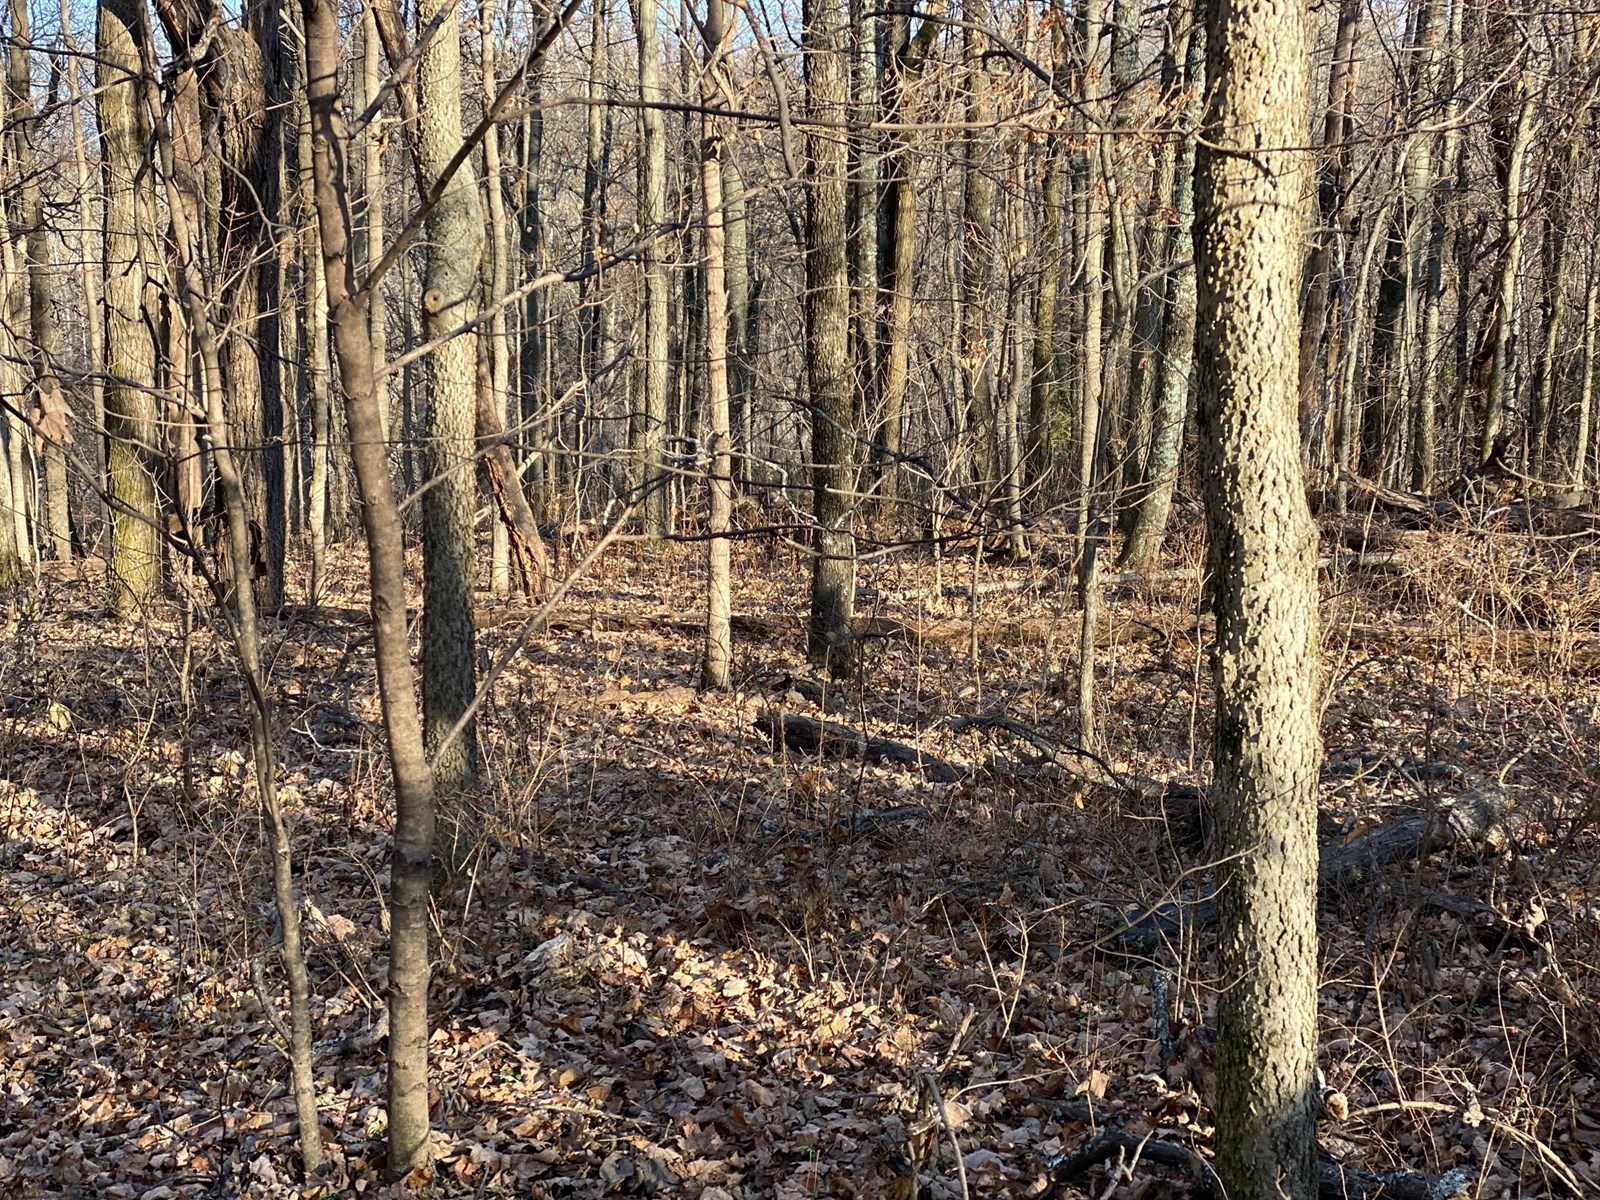 17 Acres of beautiful Tennessee Land for sale!